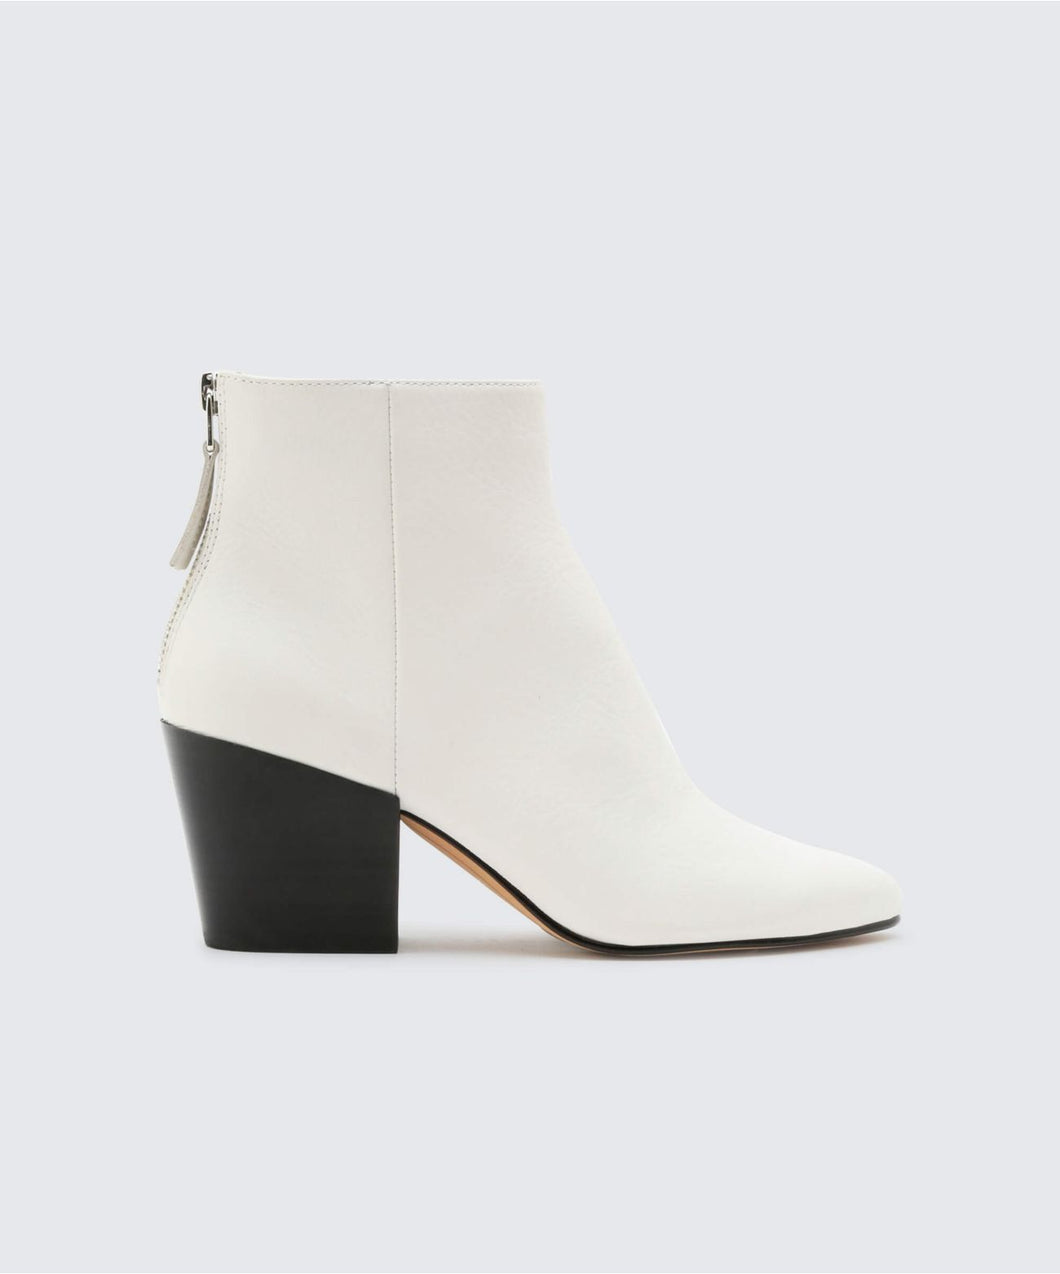 COLTYN BOOTIES IN OFF WHITE -   Dolce Vita